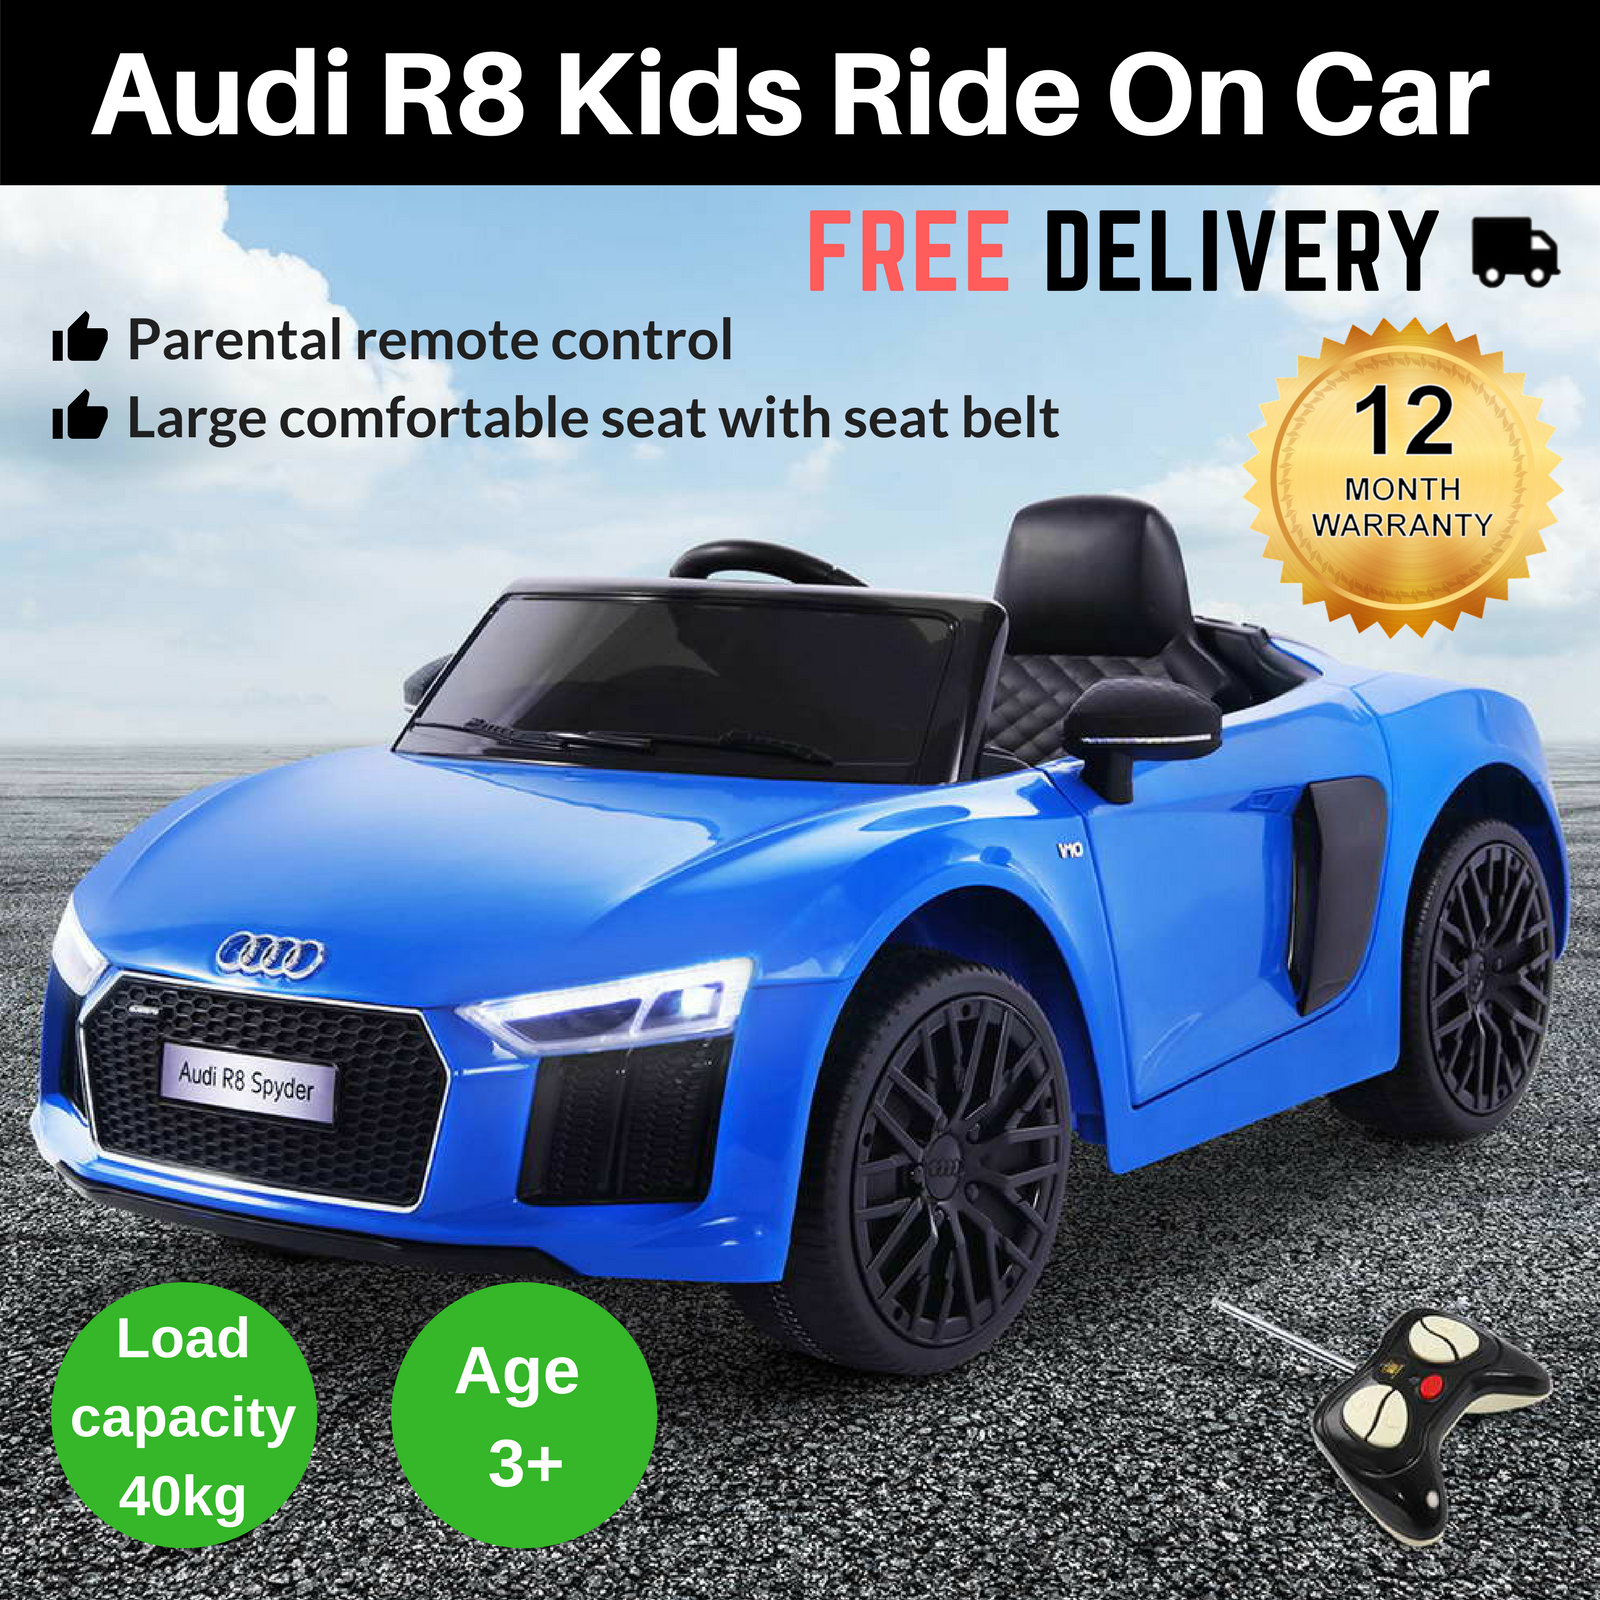 Suitable For Kids Aged Three And Above, The Audi R8 Ride On Car Makes An  Awesome Gift For Birthdays, Special Events Or Christmas.